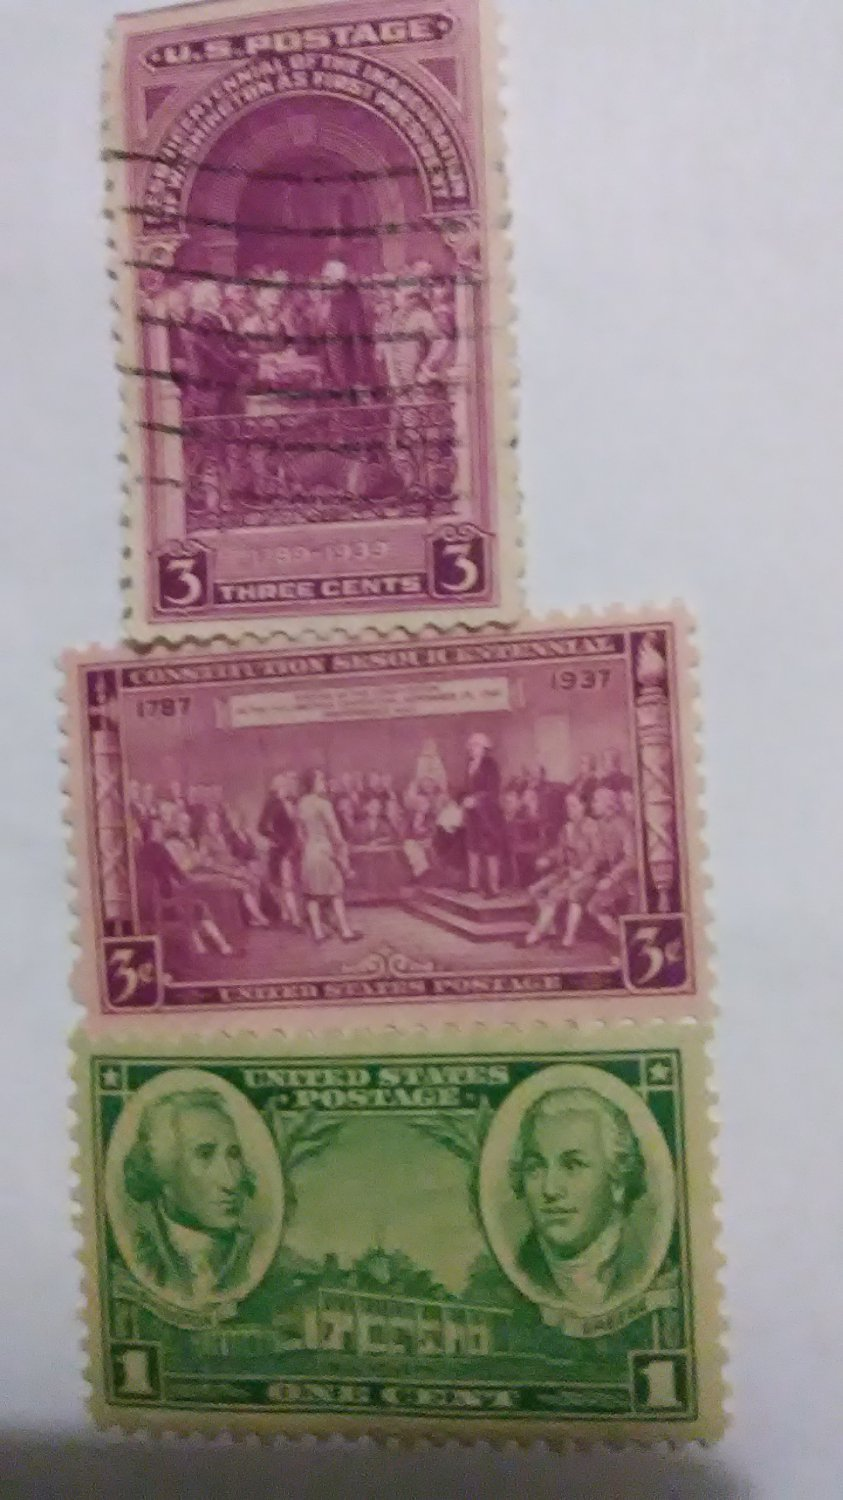 Washington 3 cent ,2 cent,and 1 cent stamps